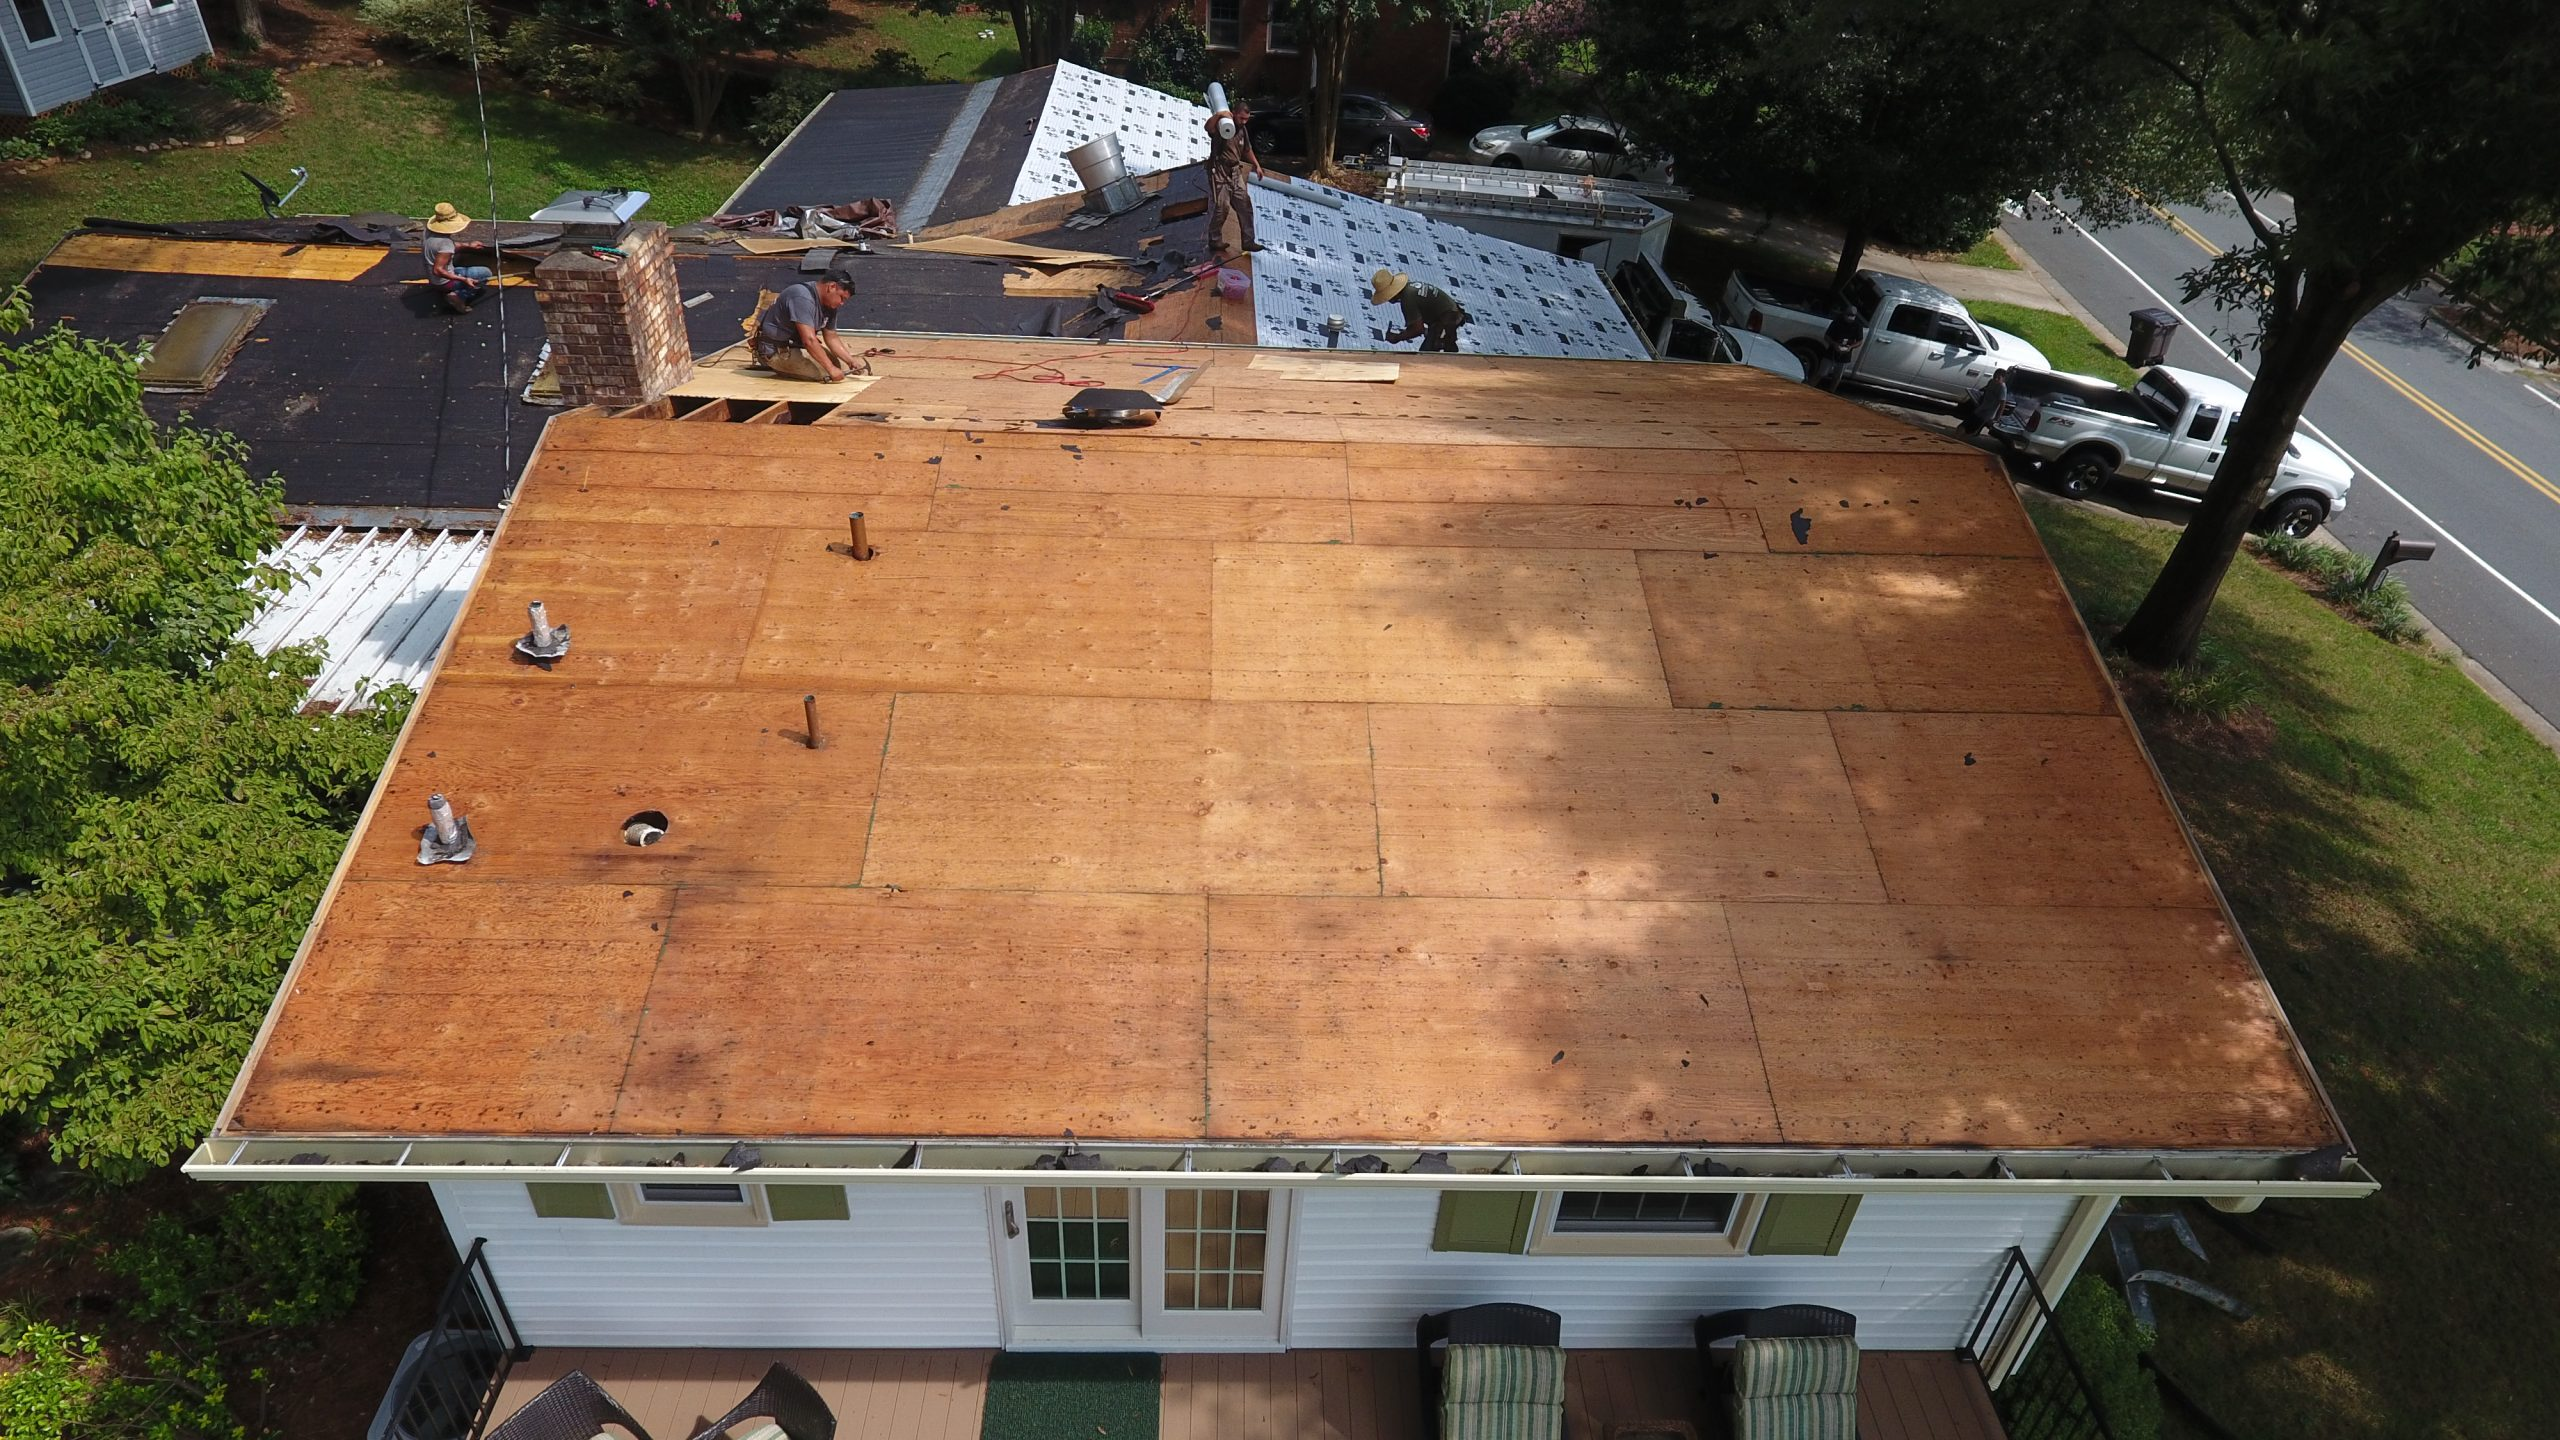 WE'LL GIVE YOUR ROOF A NEW LIFE!